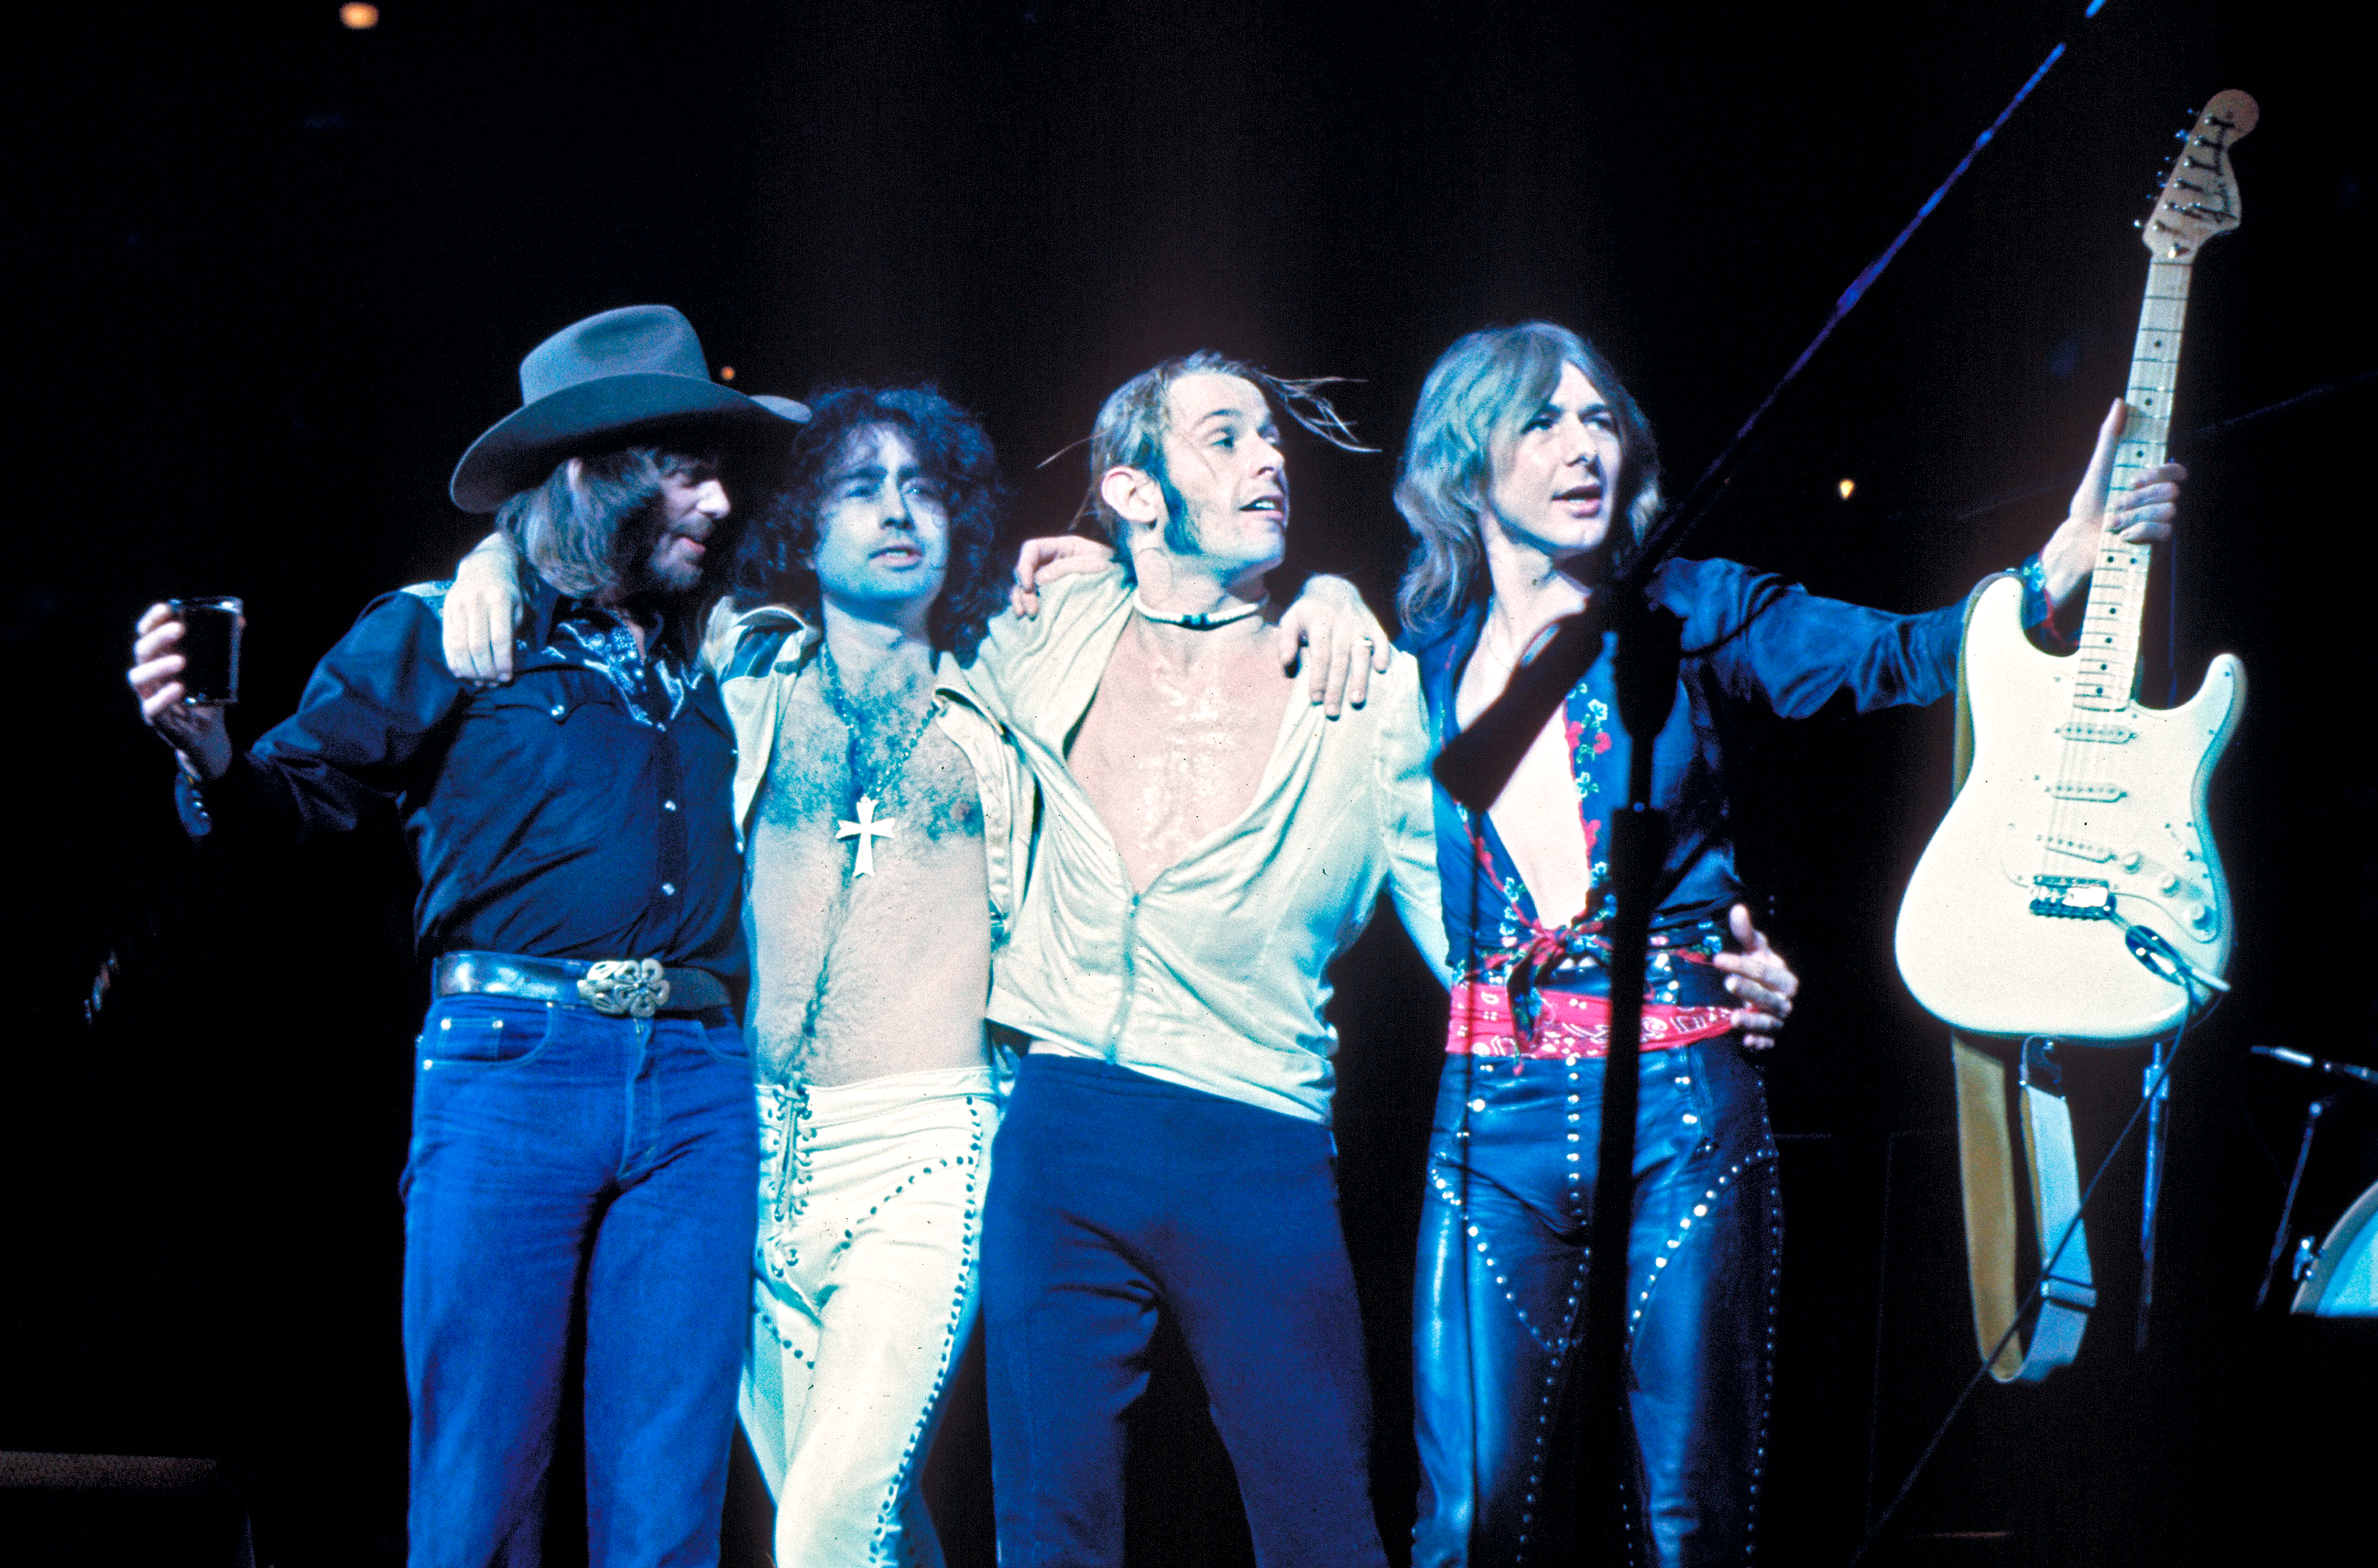 Depiction of Bad Company